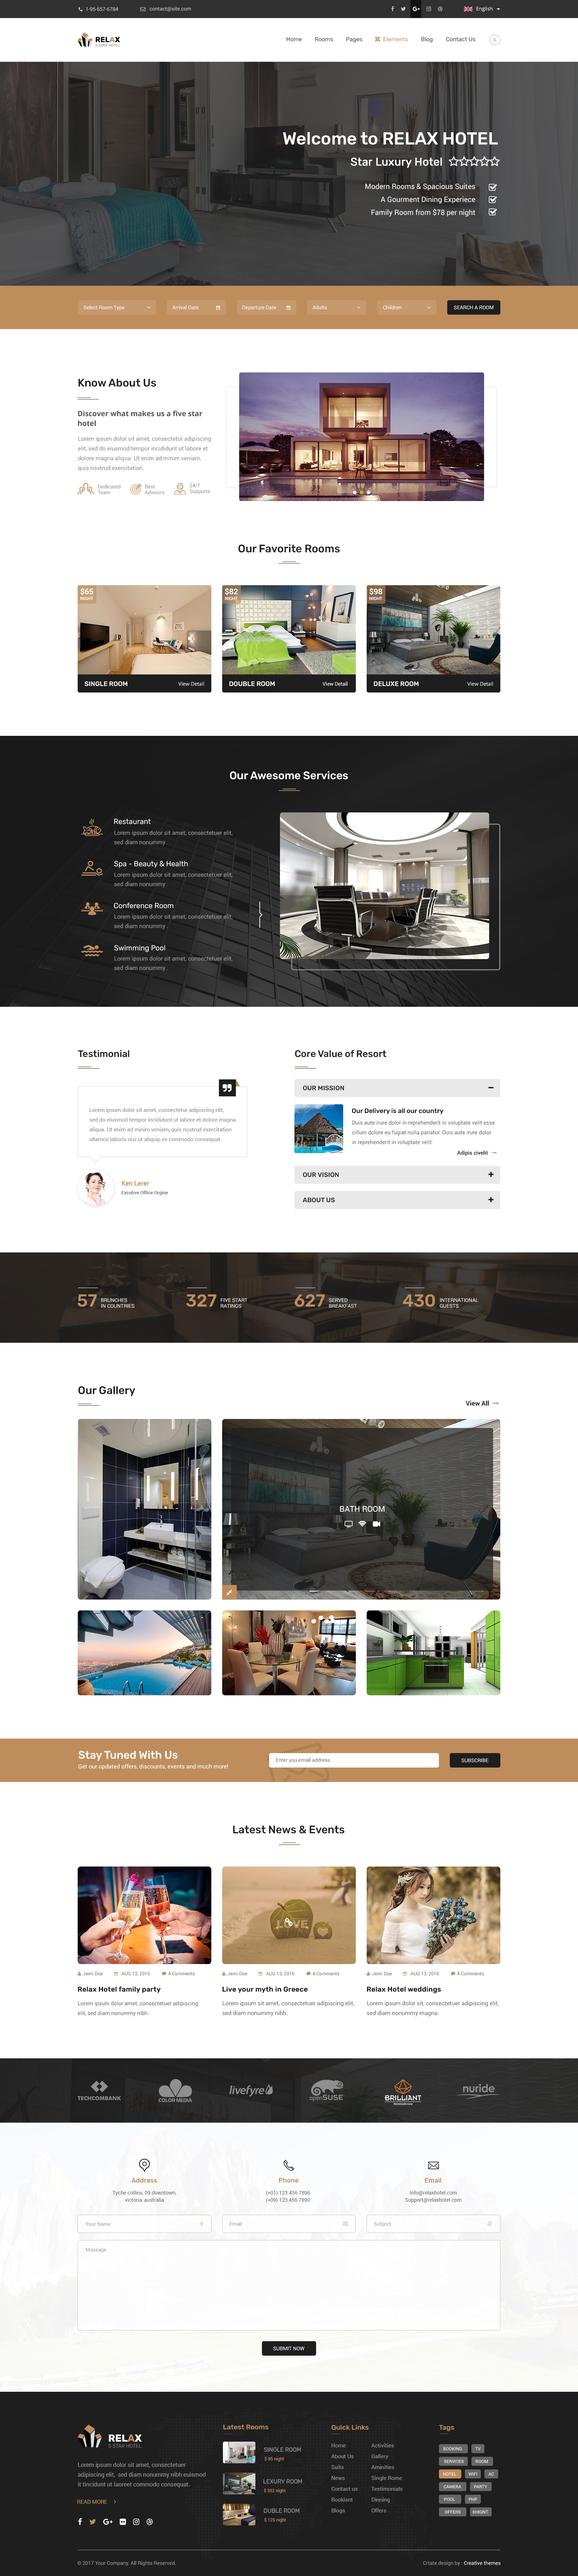 Hotel Relax for Reservation, Resort and Spa PSD Template by XaraThemes